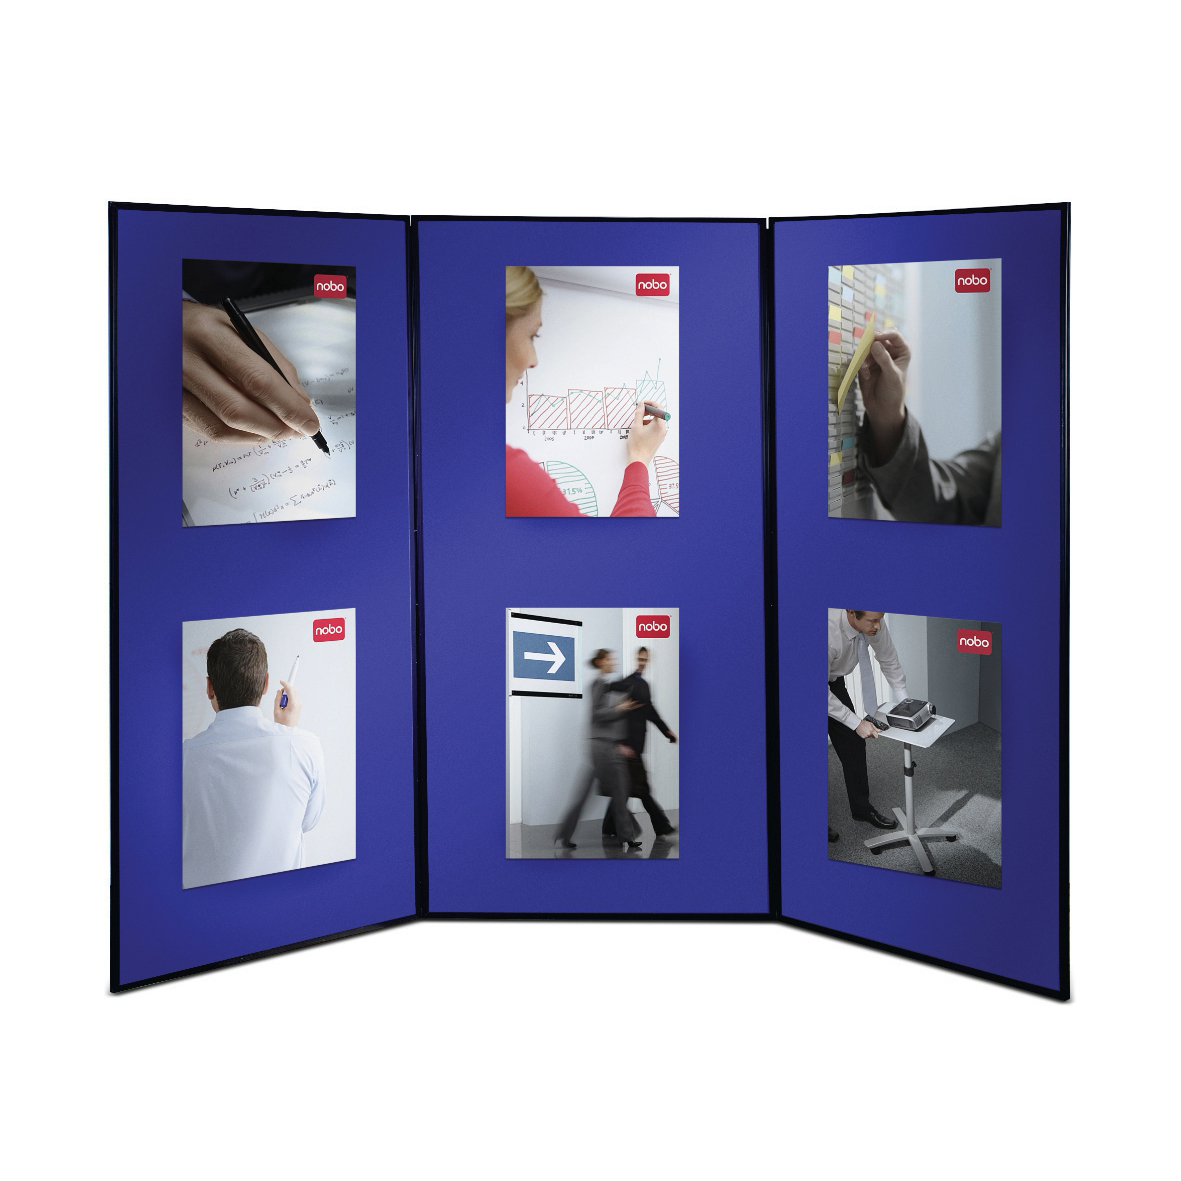 Panel assemblies or sections Nobo Showboard Extra Display 3 Panels 9.5Kg W1800xH2700mm-Open Sides Blue and Grey Ref 1901710